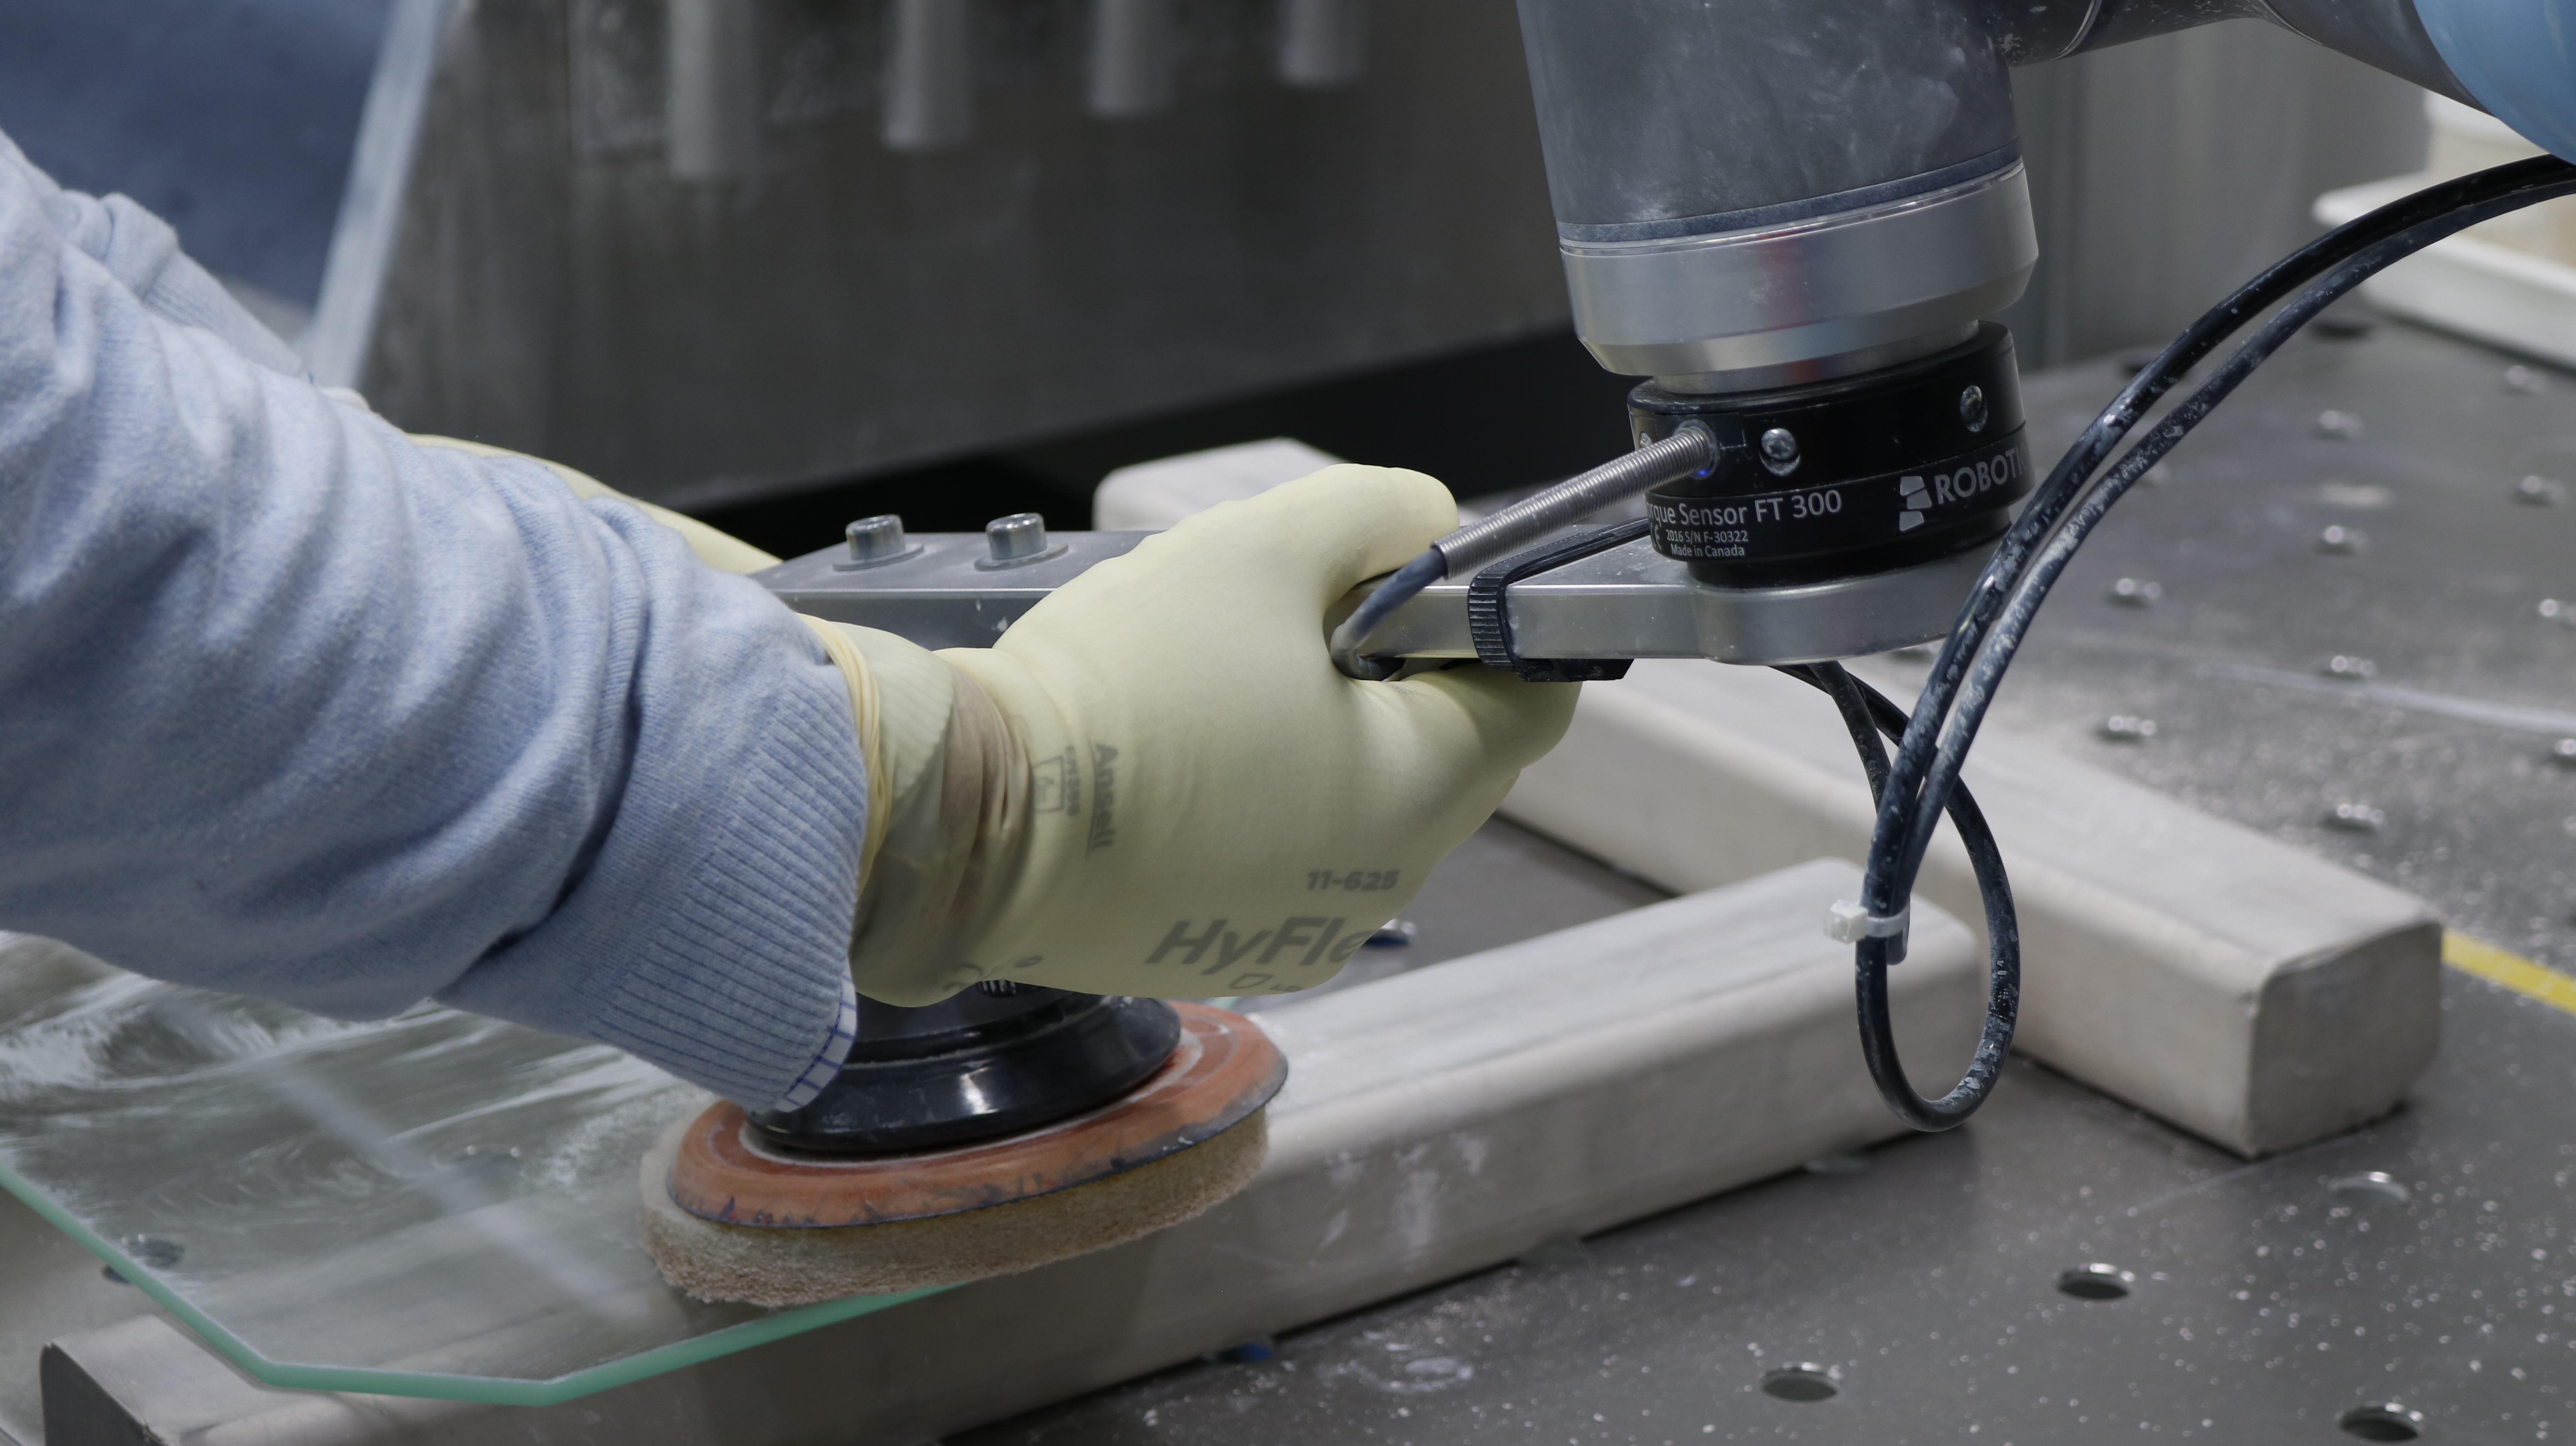 Perform Highly Repeatable Precision Tasks With the FT 300 Force Torque Sensor